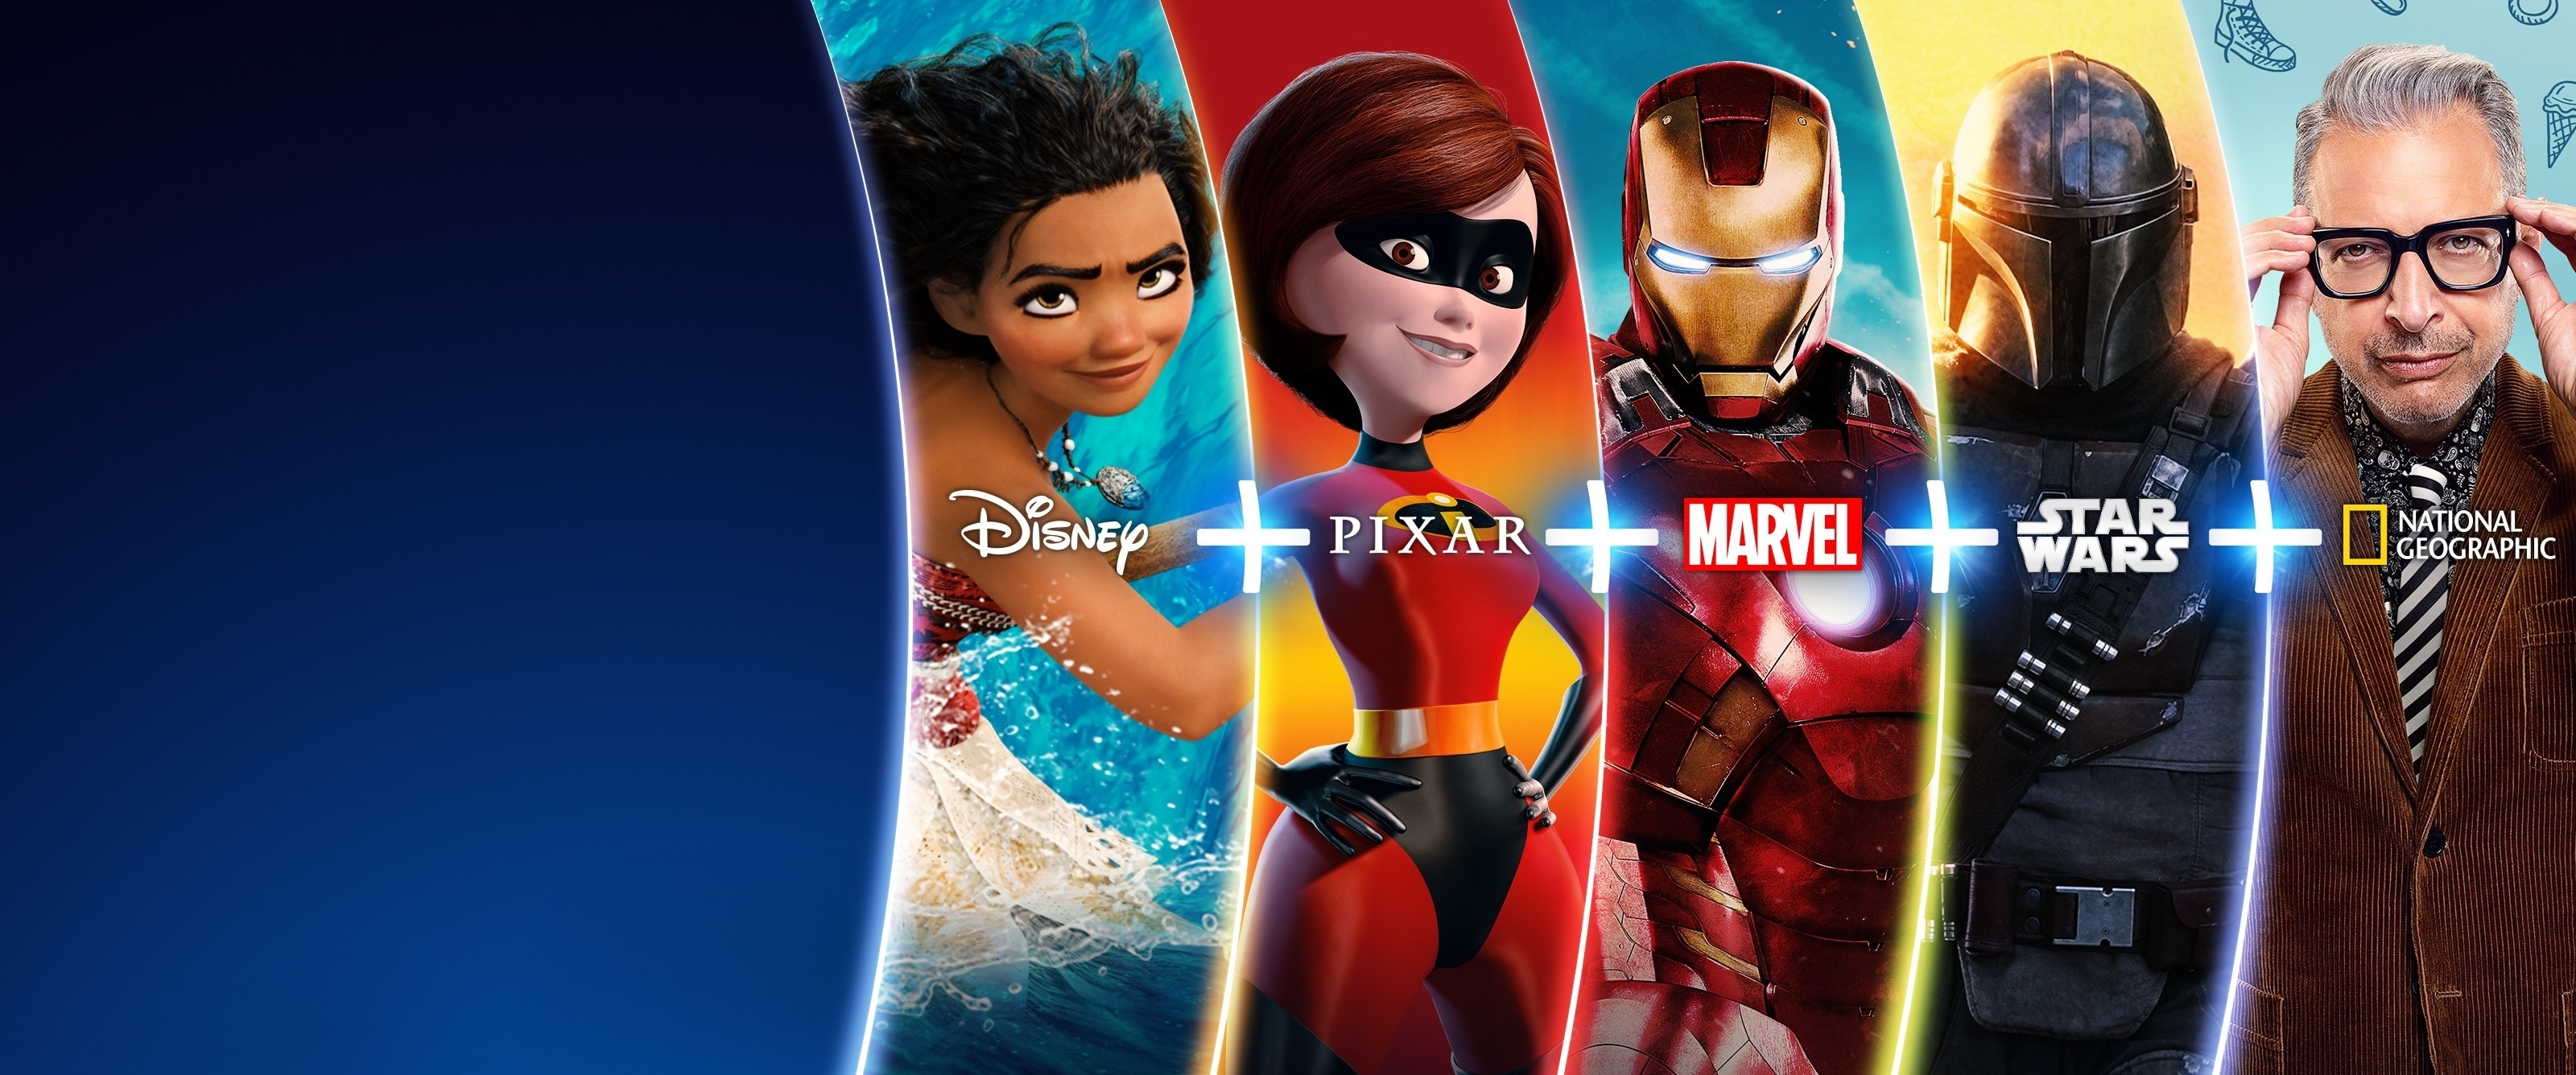 Find out more about Disney+